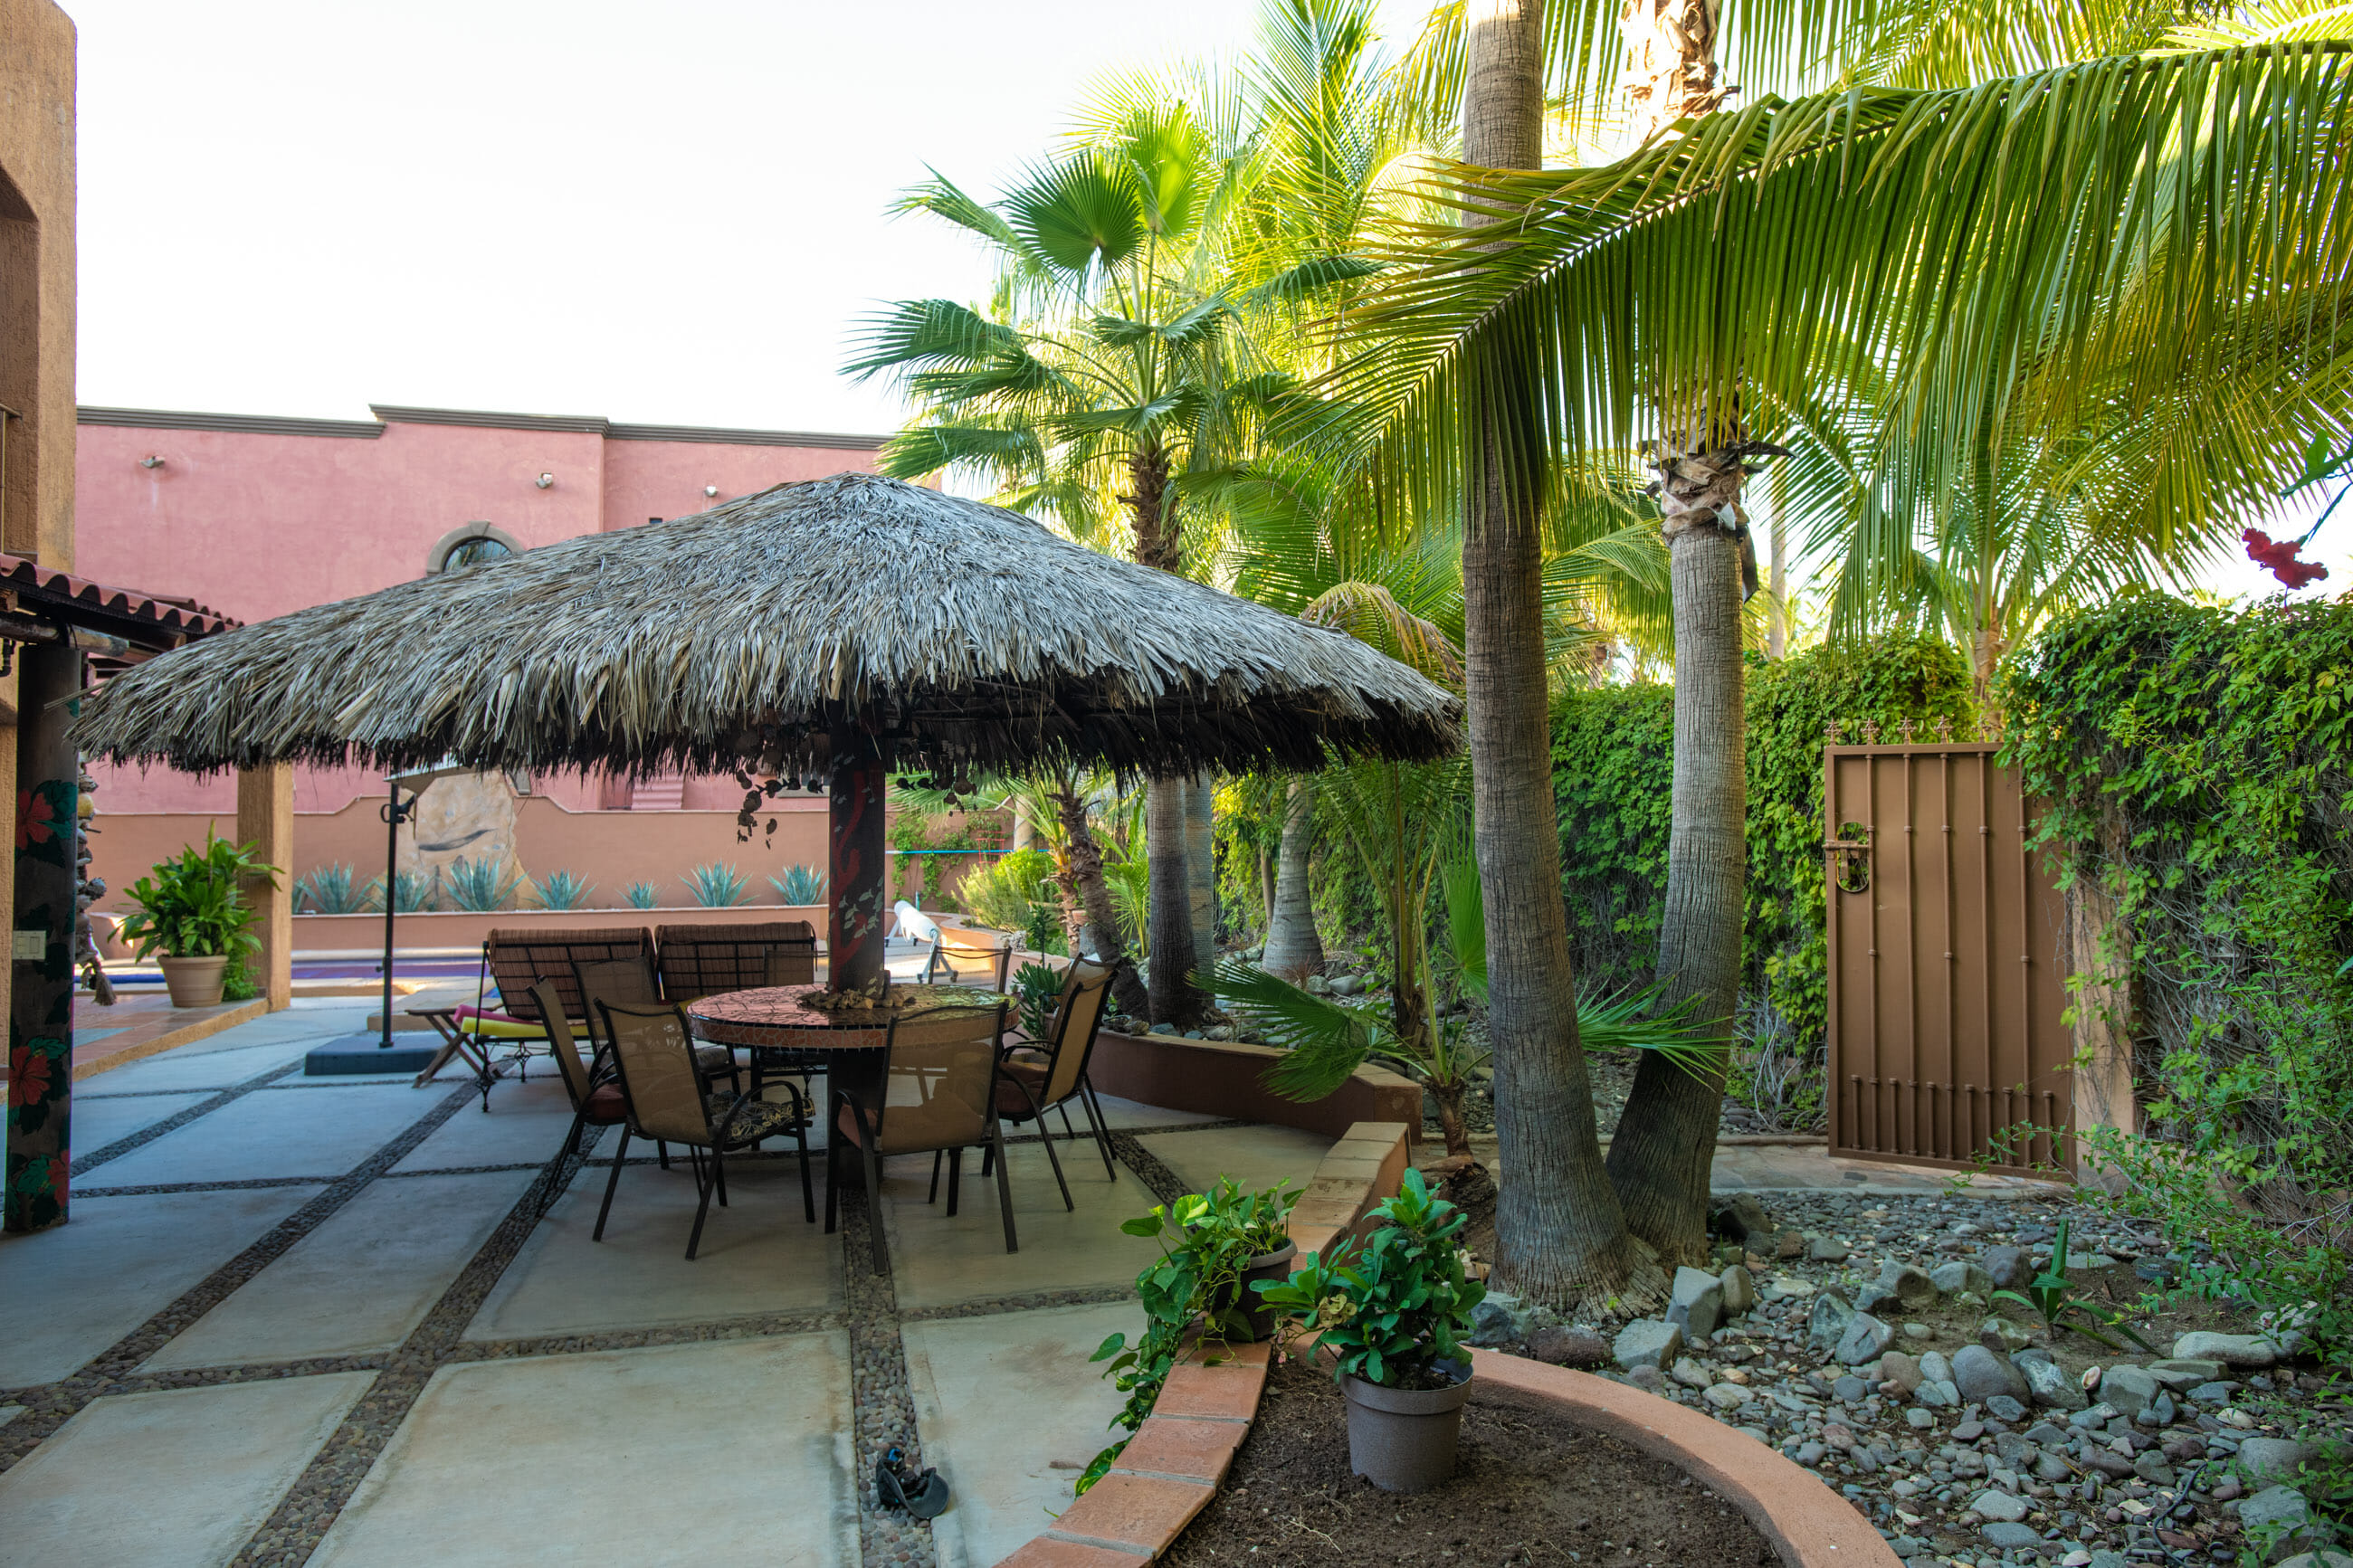 288 Davis St Loreto, Baja California Sur Mexico: Palapa and table poolside